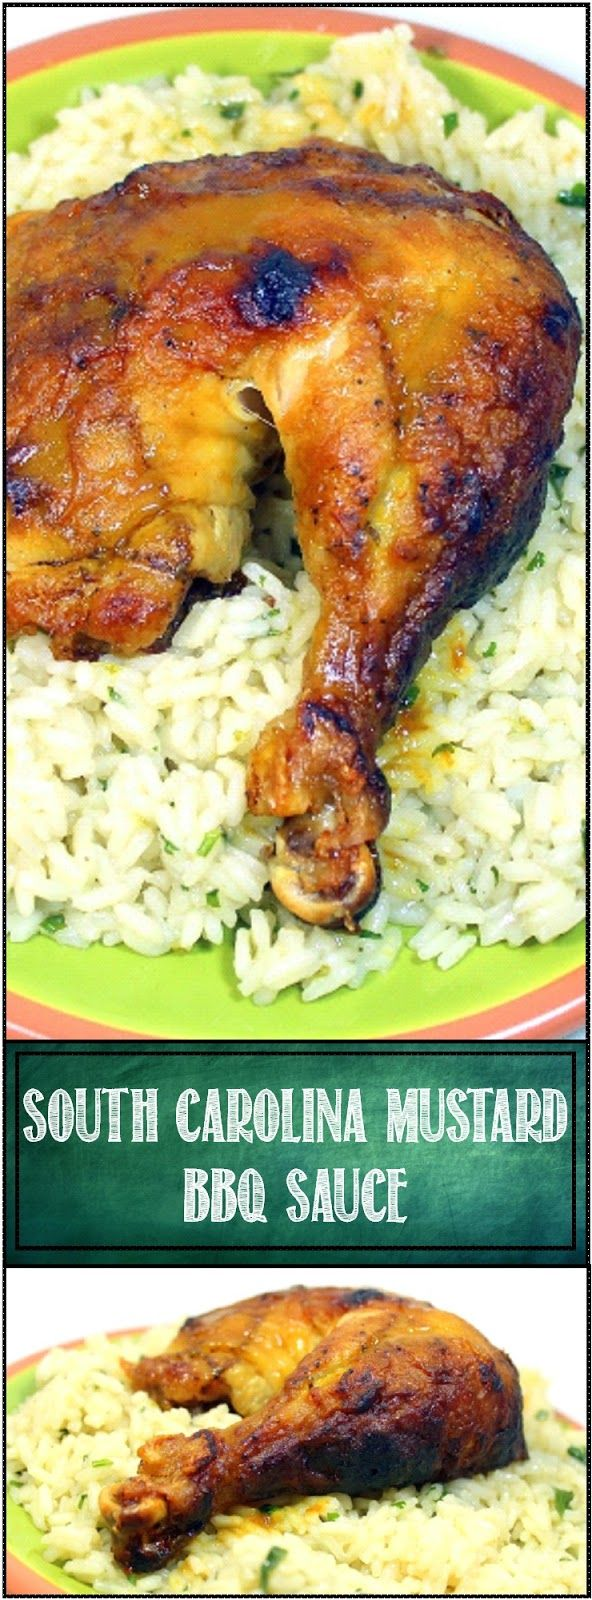 """South Carolina Mustard BBQ Sauce on a Rotisserie Chicken Quarter NOTHING COULD BE EASIER. The recipe for the sauce is a simple, """"Add Ingredients in a Jar and Shake like Heck"""" sauce. No cooking but BIG in payoff. Turns a simple Store Bought Pre-Cooked Bird into a Special Occasion Dinner!"""